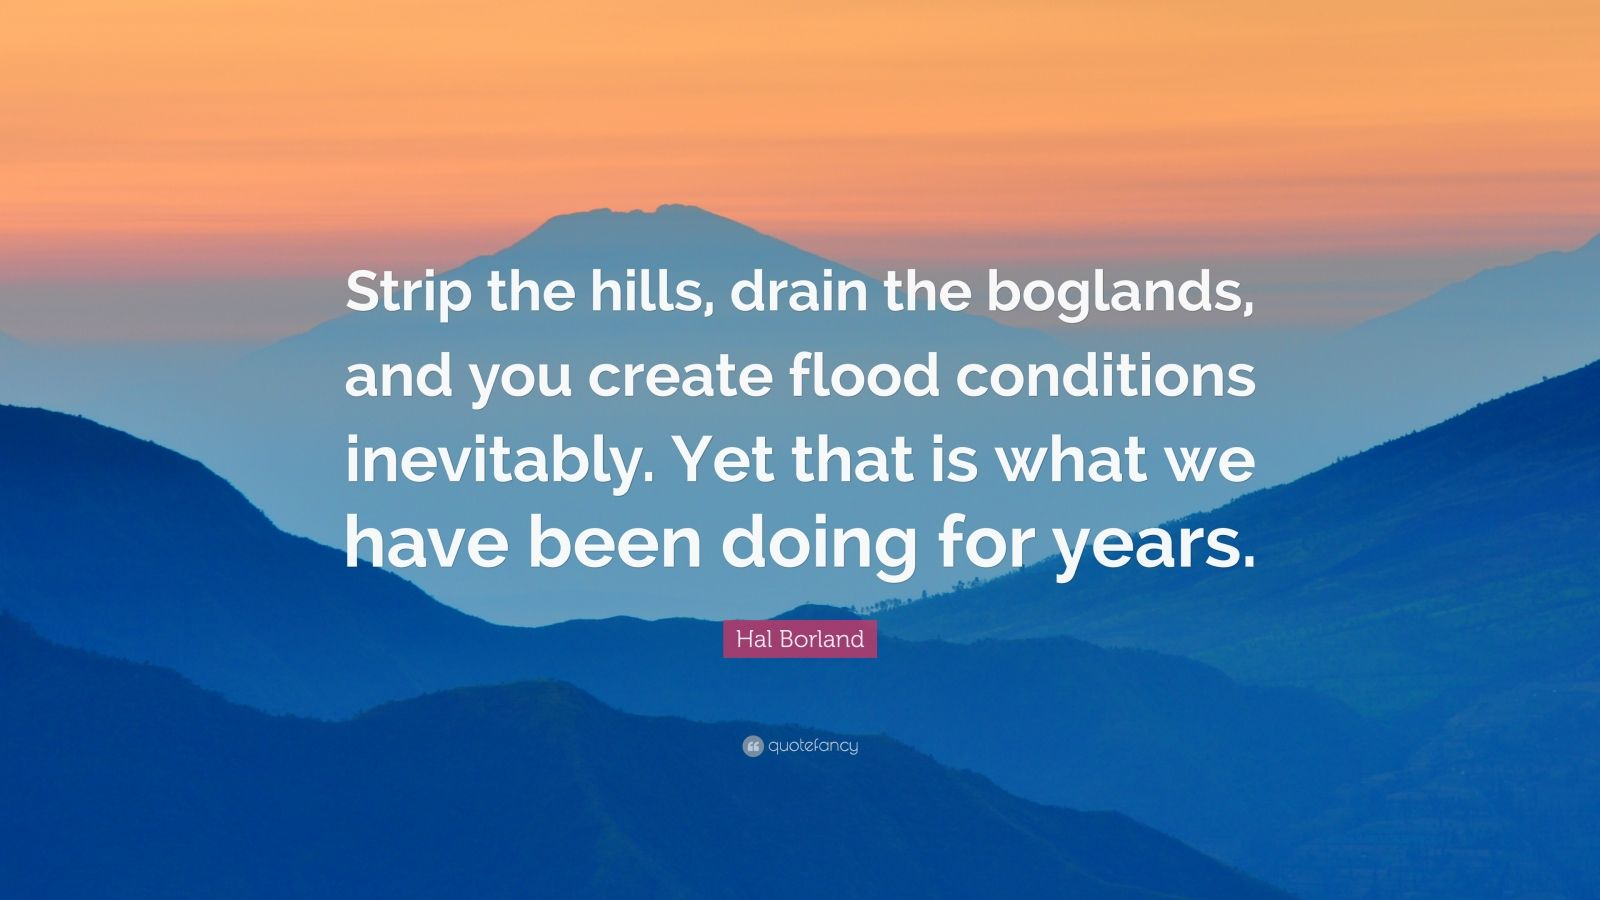 """Hal Borland Quote: """"Strip the hills, drain the boglands, and you create flood conditions inevitably. Yet that is what we have been doing for years."""""""